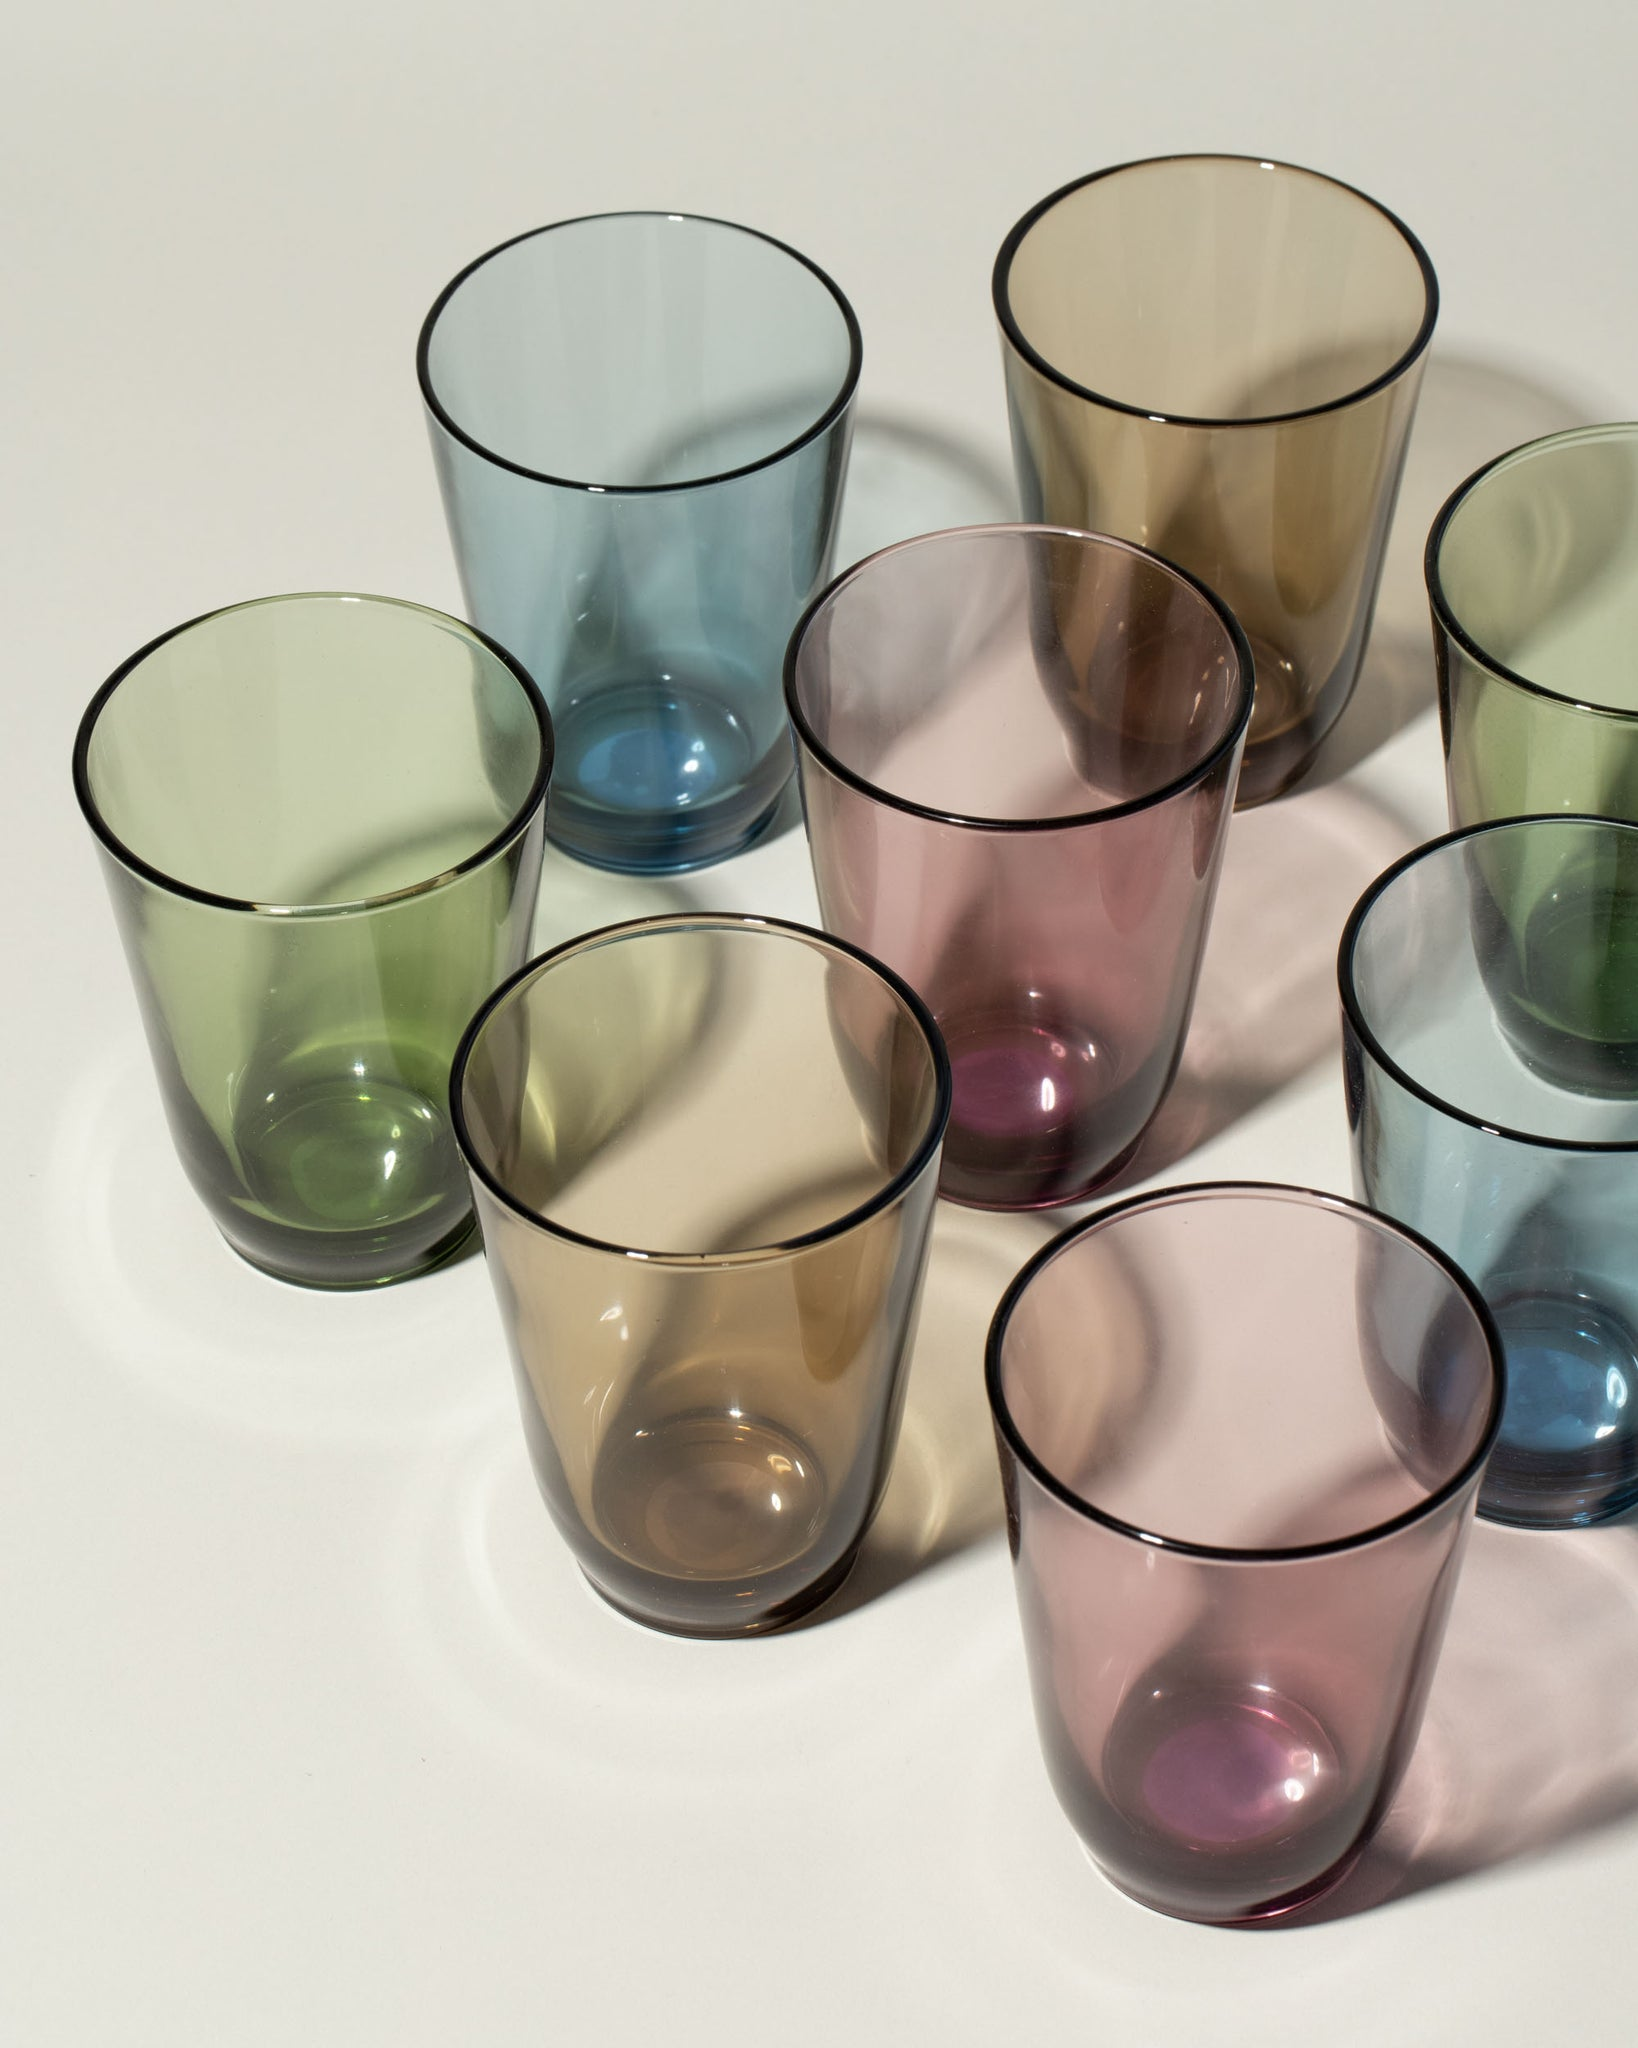 Hibi glasses group of mixed colors